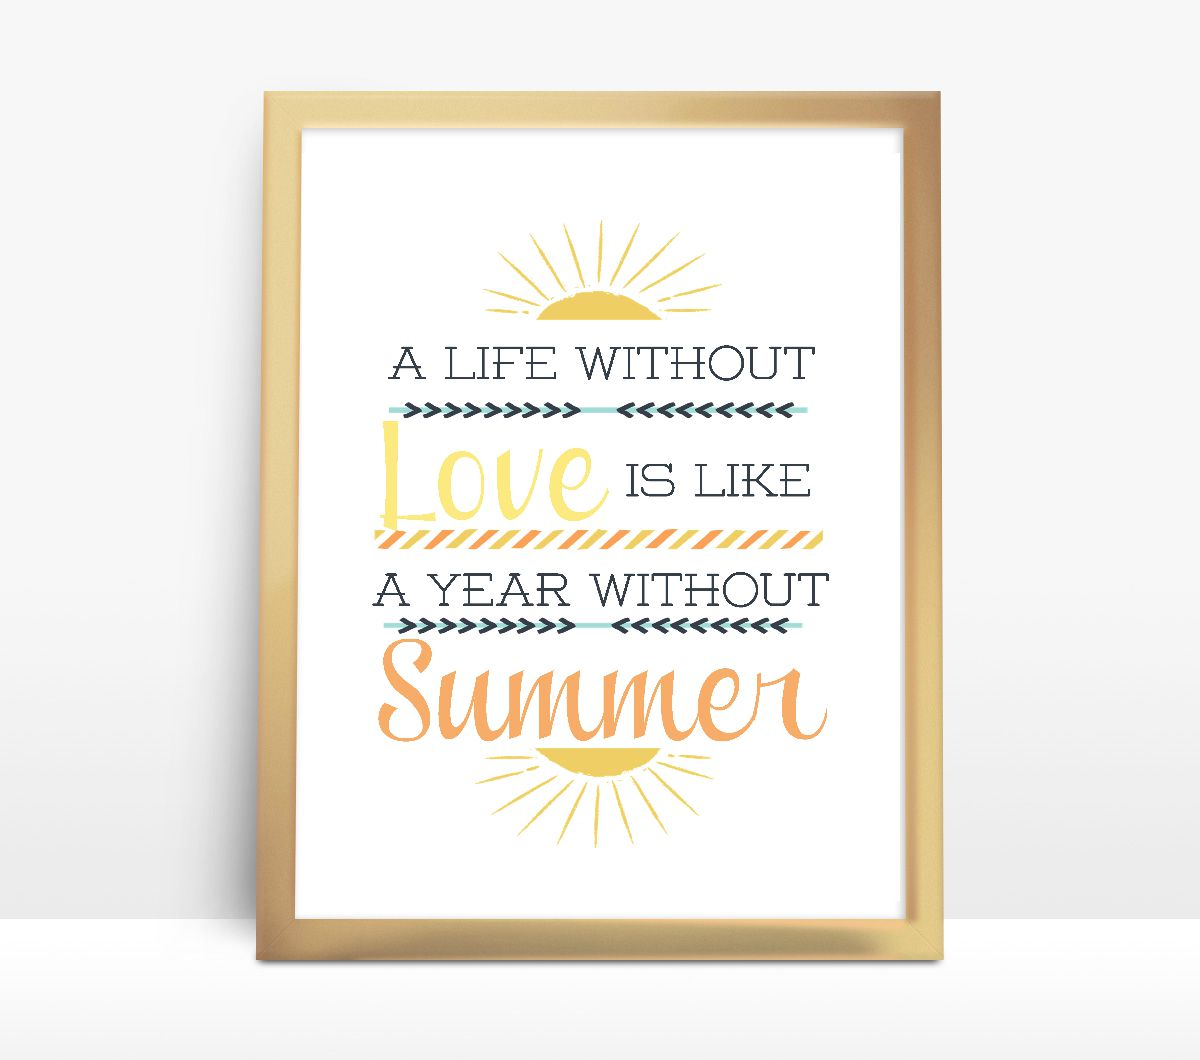 Love and Summer FREE Printable